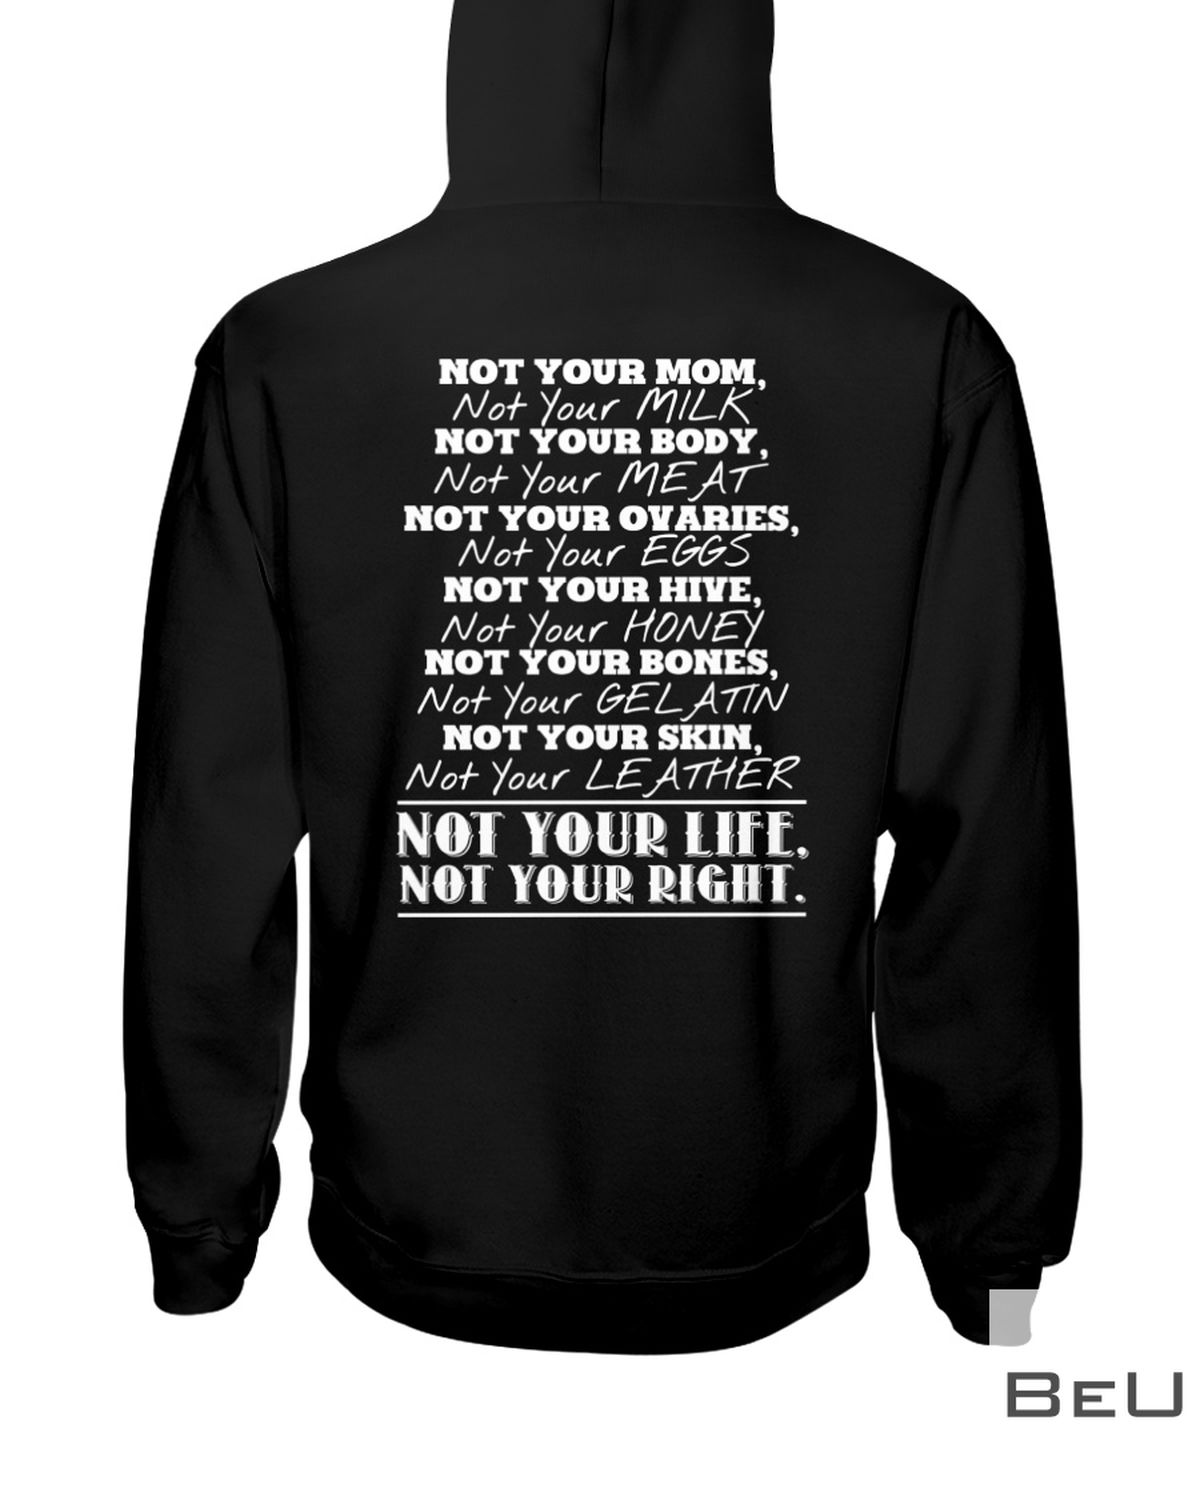 Not Your Life Not Your Right Shirtx